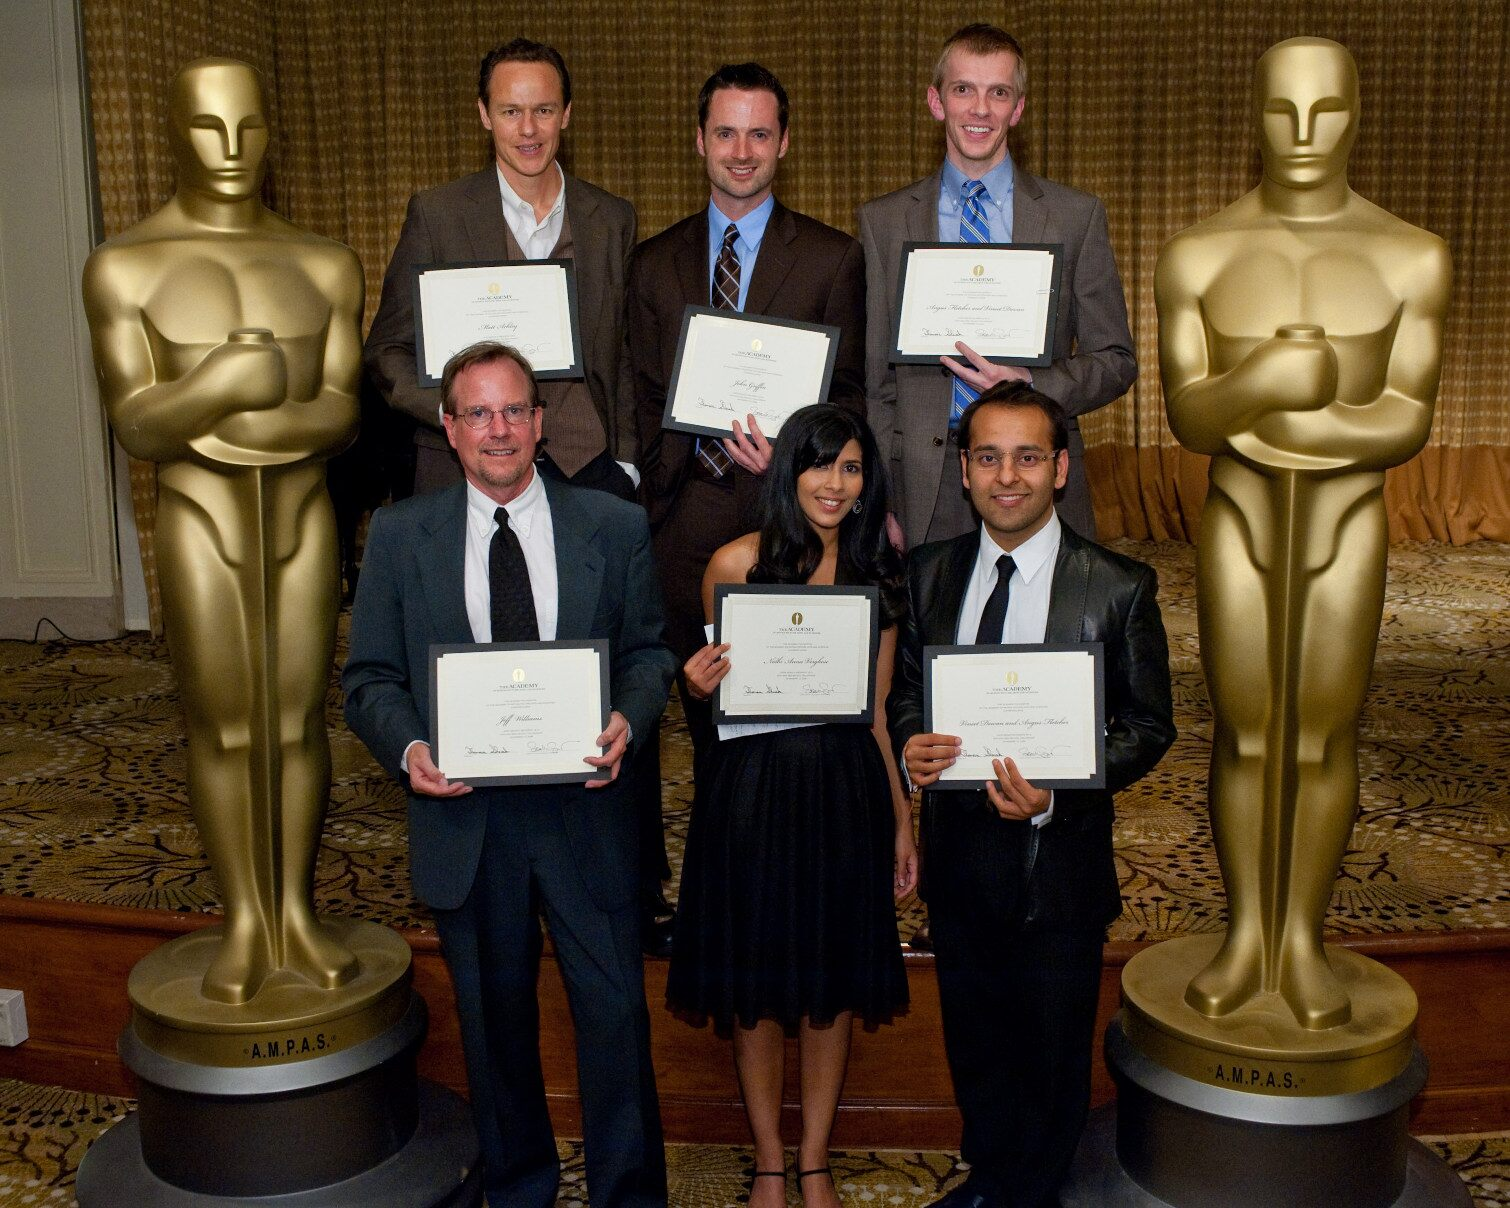 """Fellowships in Screenwriting last night (November 13) in Beverly Hills. Pictured here are this year's fellows: (left to right, front row) Jeff Williams, writer of """"Pure""""; Nidhi Anna Verghese, writer of """"Jallianwala Bagh""""; Vineet Dewan, co-writer of """"Sand"""